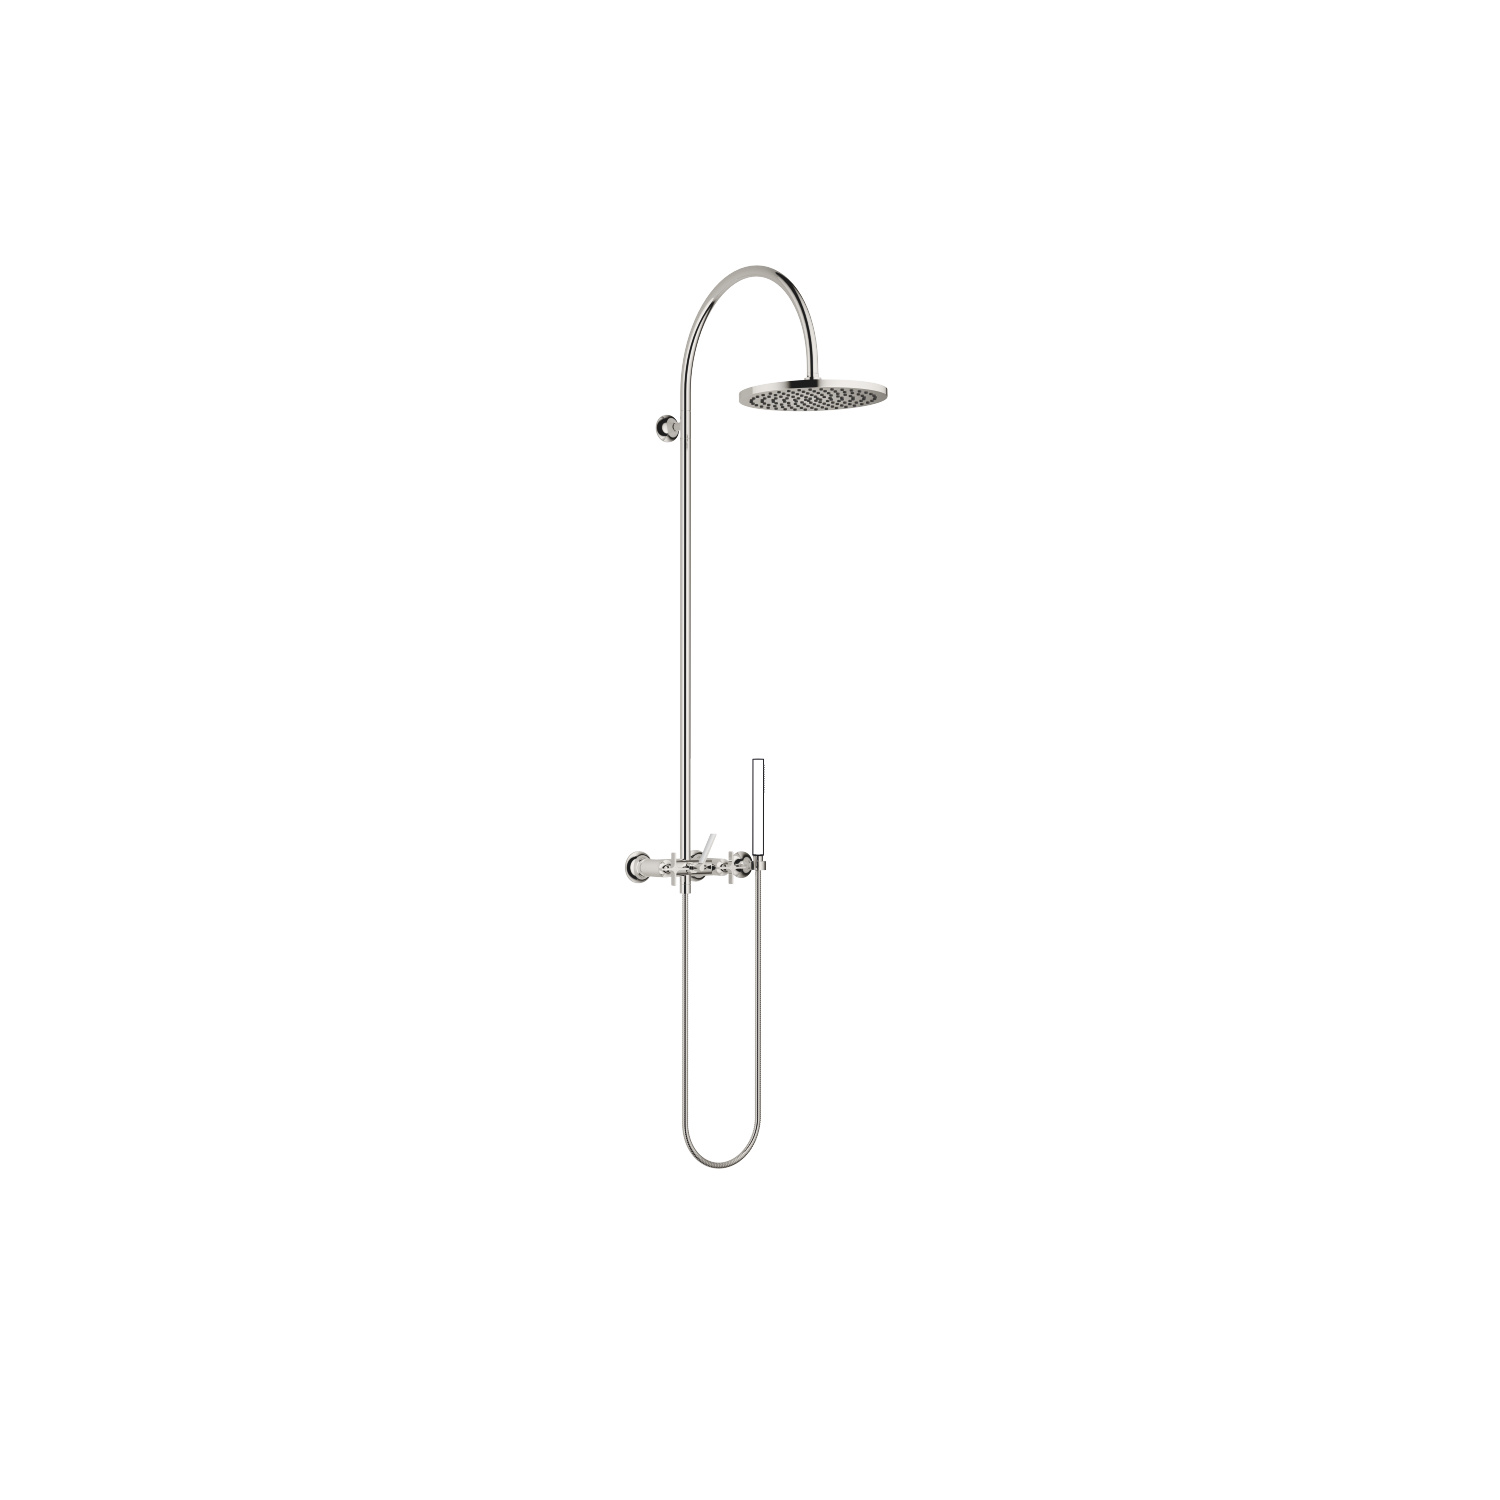 Showerpipe with shower mixer without hand shower - platinum